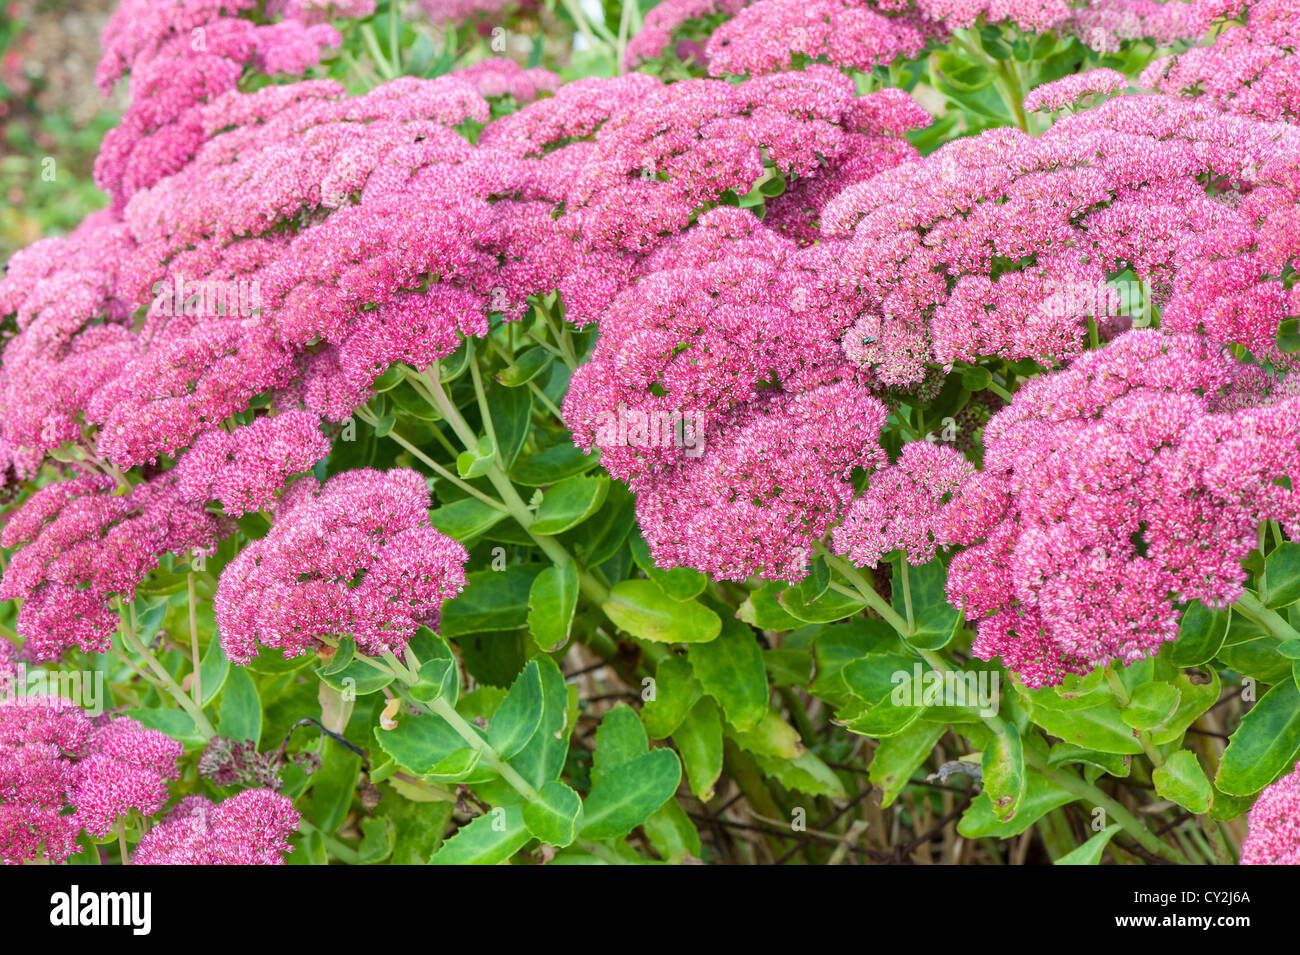 sedum spectabile 39 herbstfreude 39 stock photo 51074642 alamy. Black Bedroom Furniture Sets. Home Design Ideas